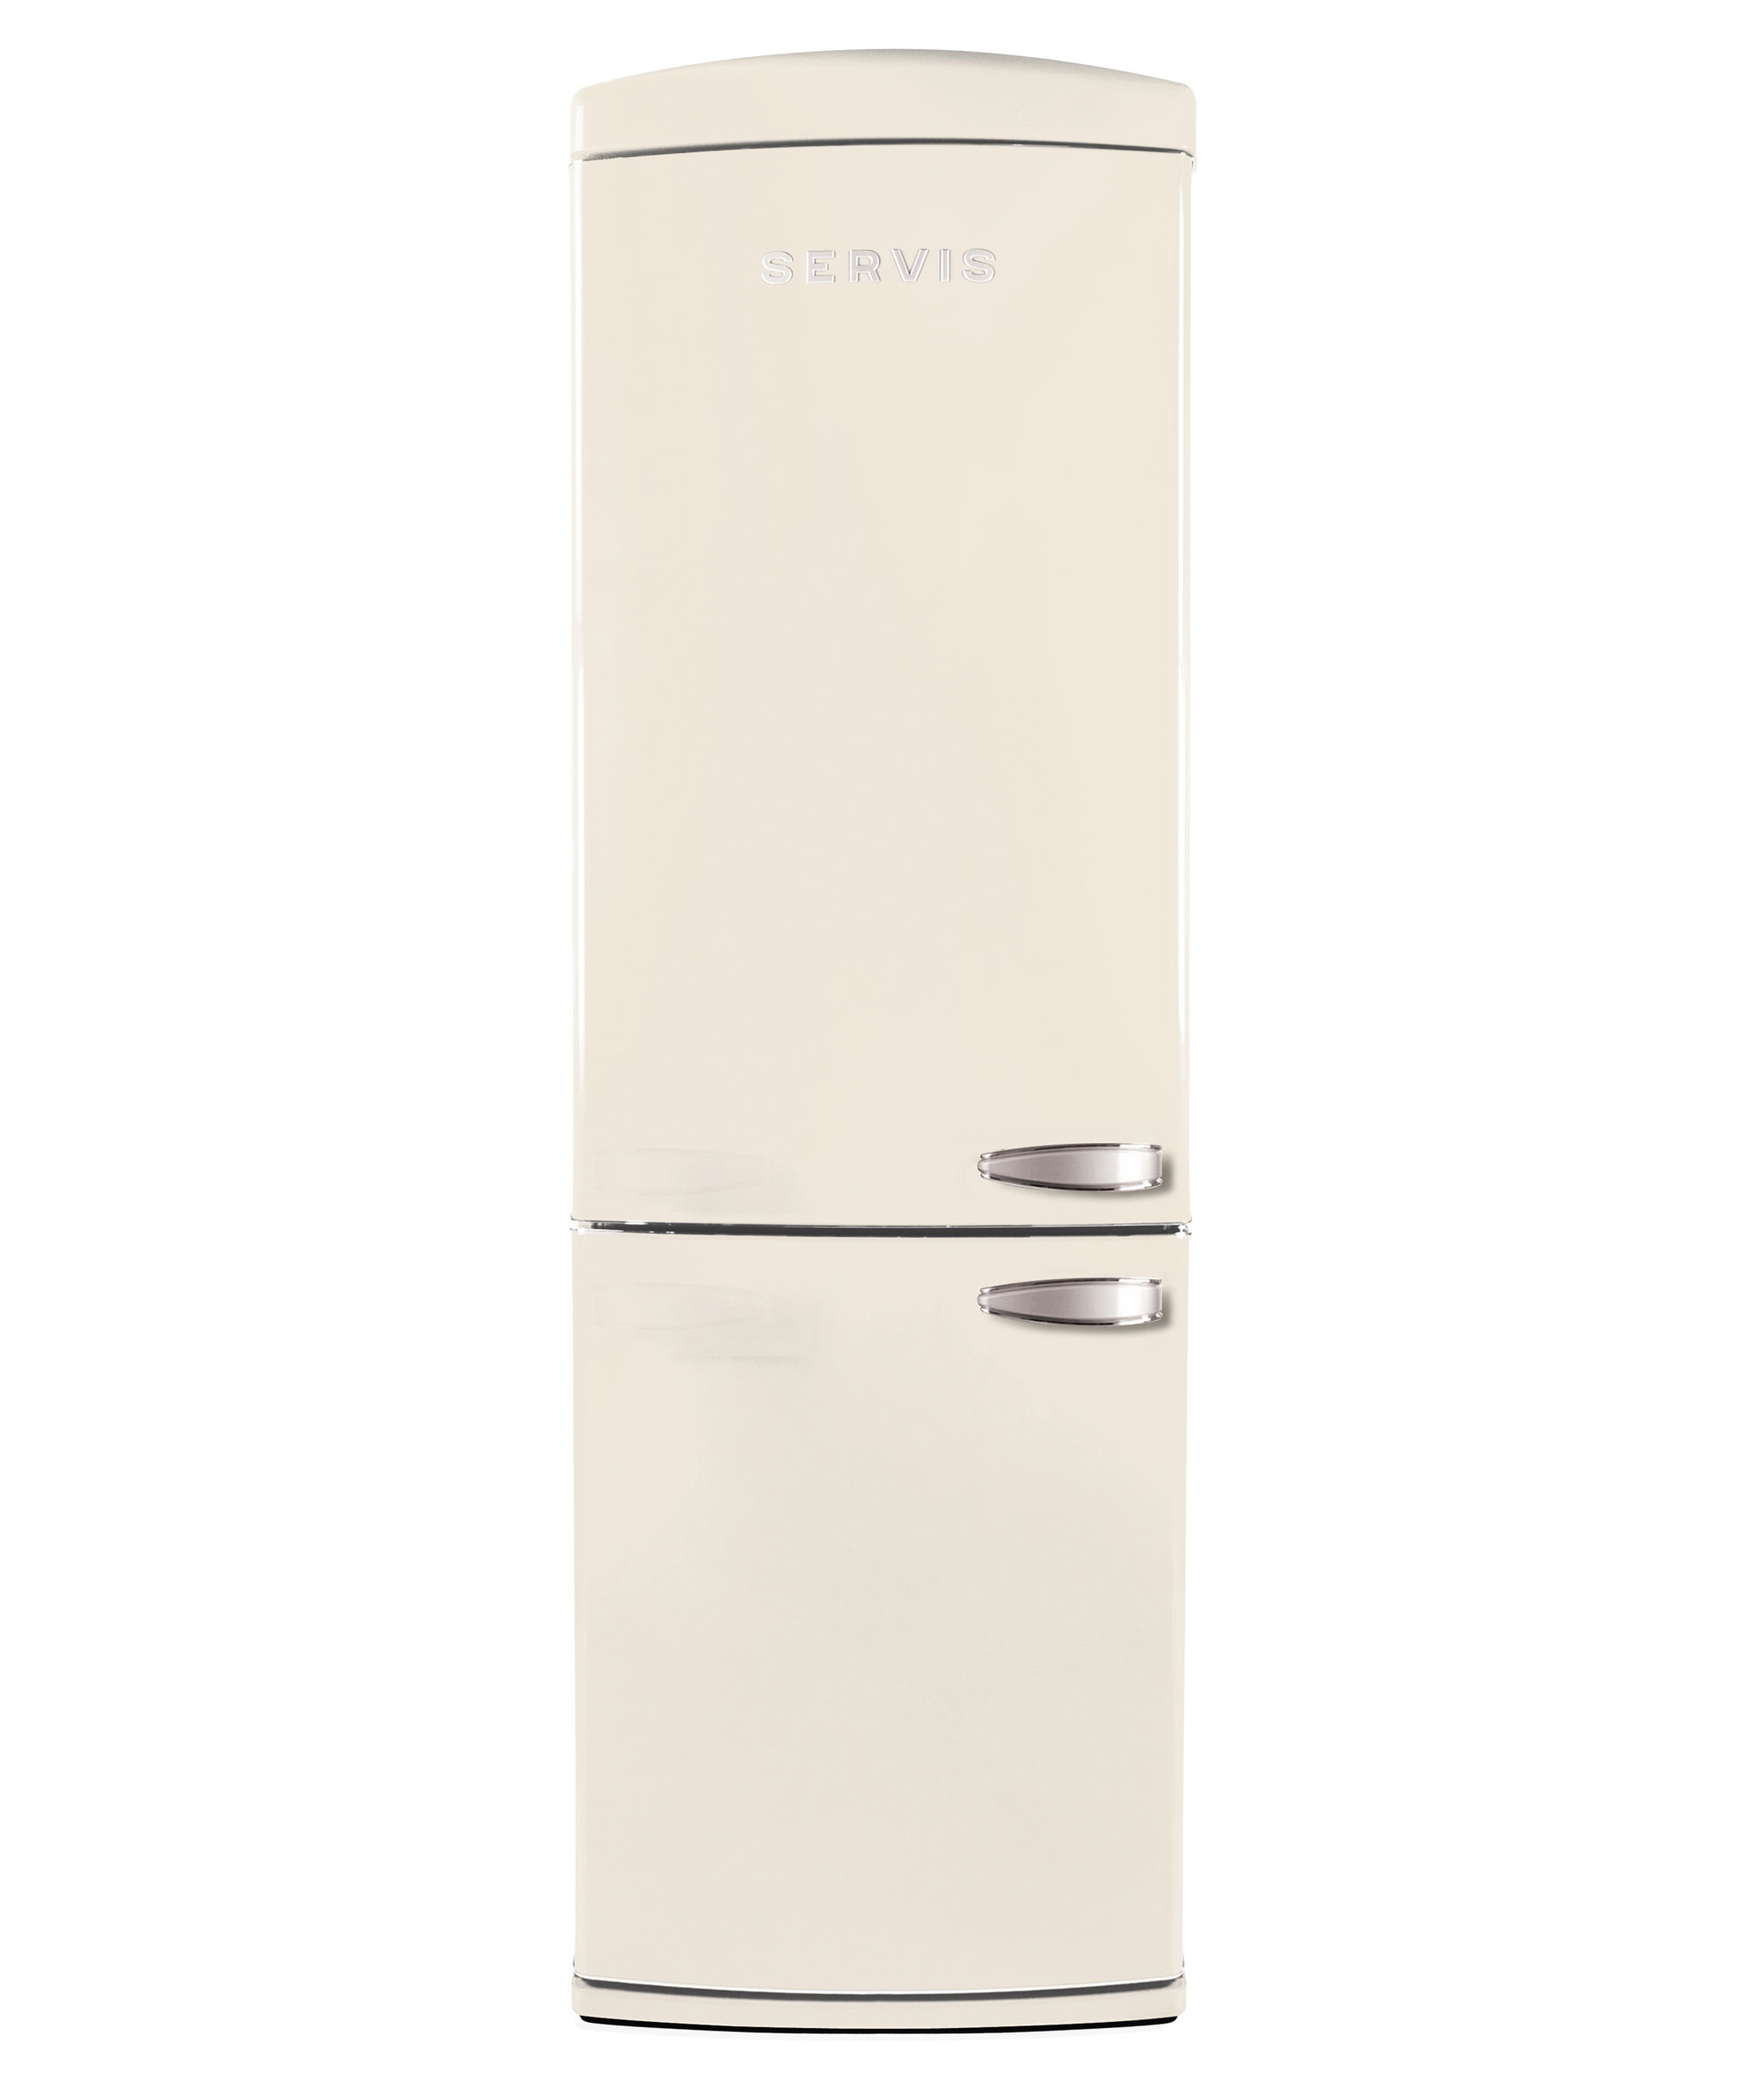 C90185RETROC-L - Left Hand Hinge Retro Cream Fridge Freezer